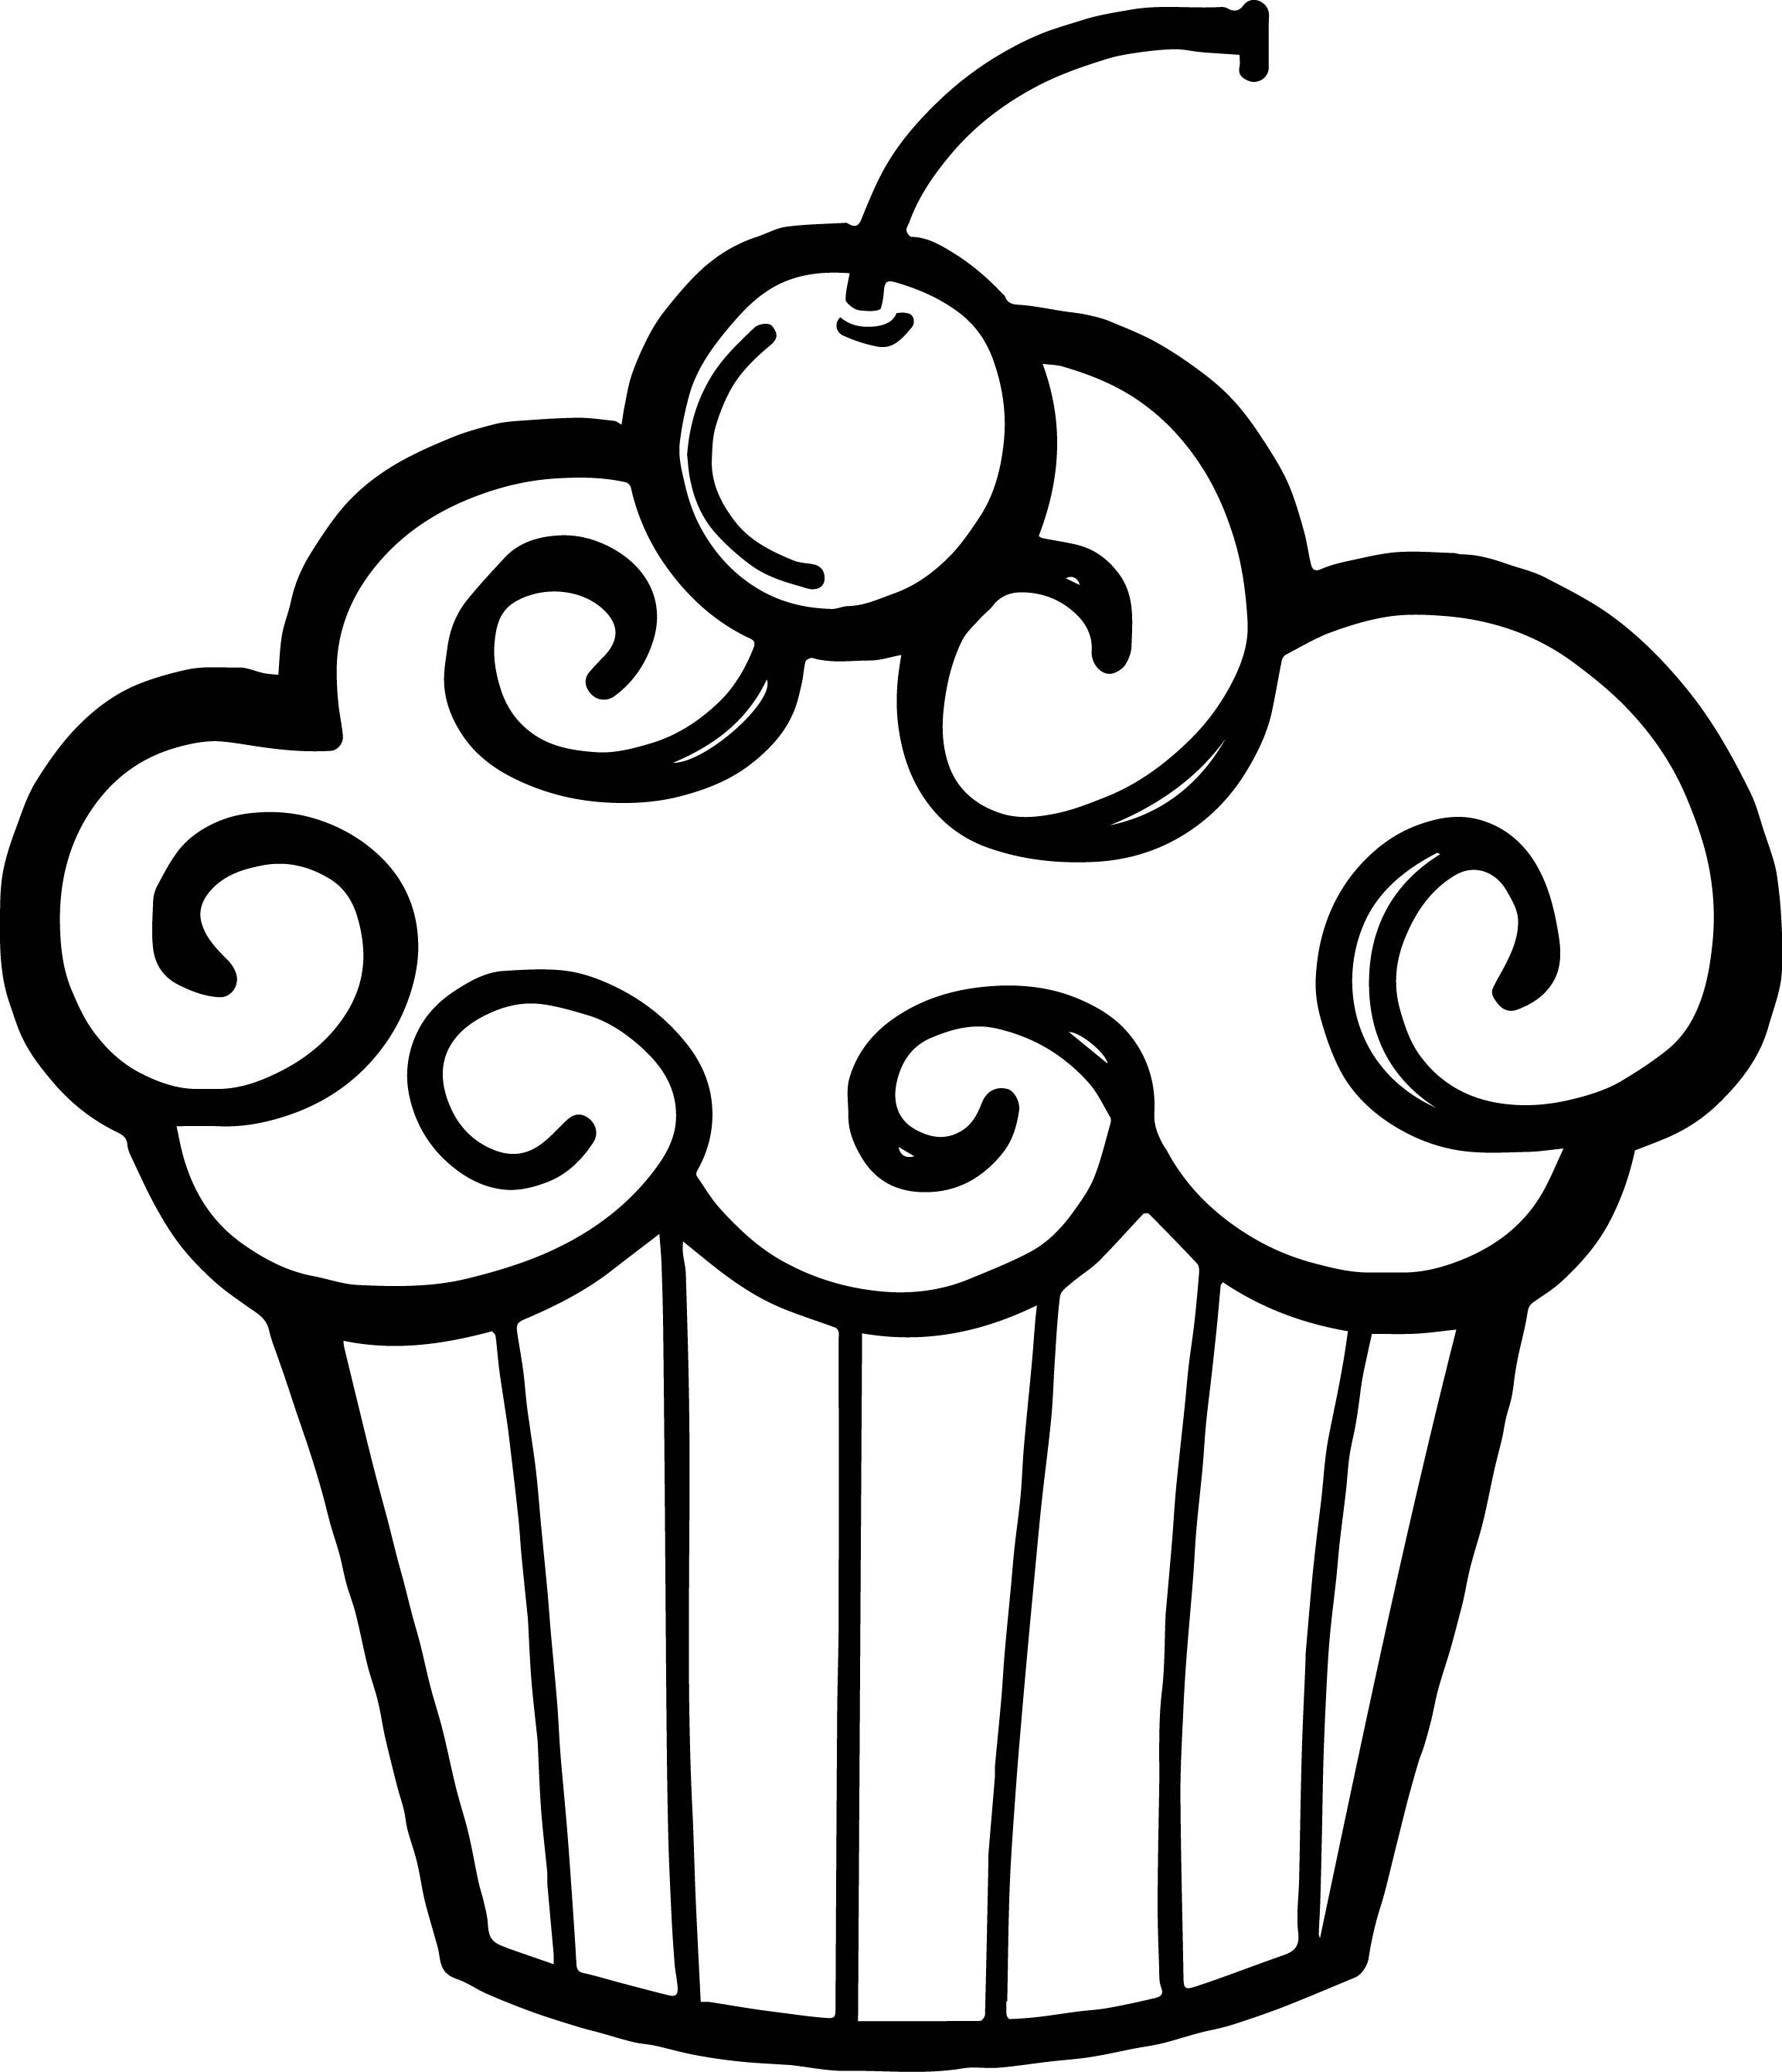 Cake clipart black and white clip art black and white stock 25+ Best Image of Birthday Cake Clipart Black And White | birthday ... clip art black and white stock